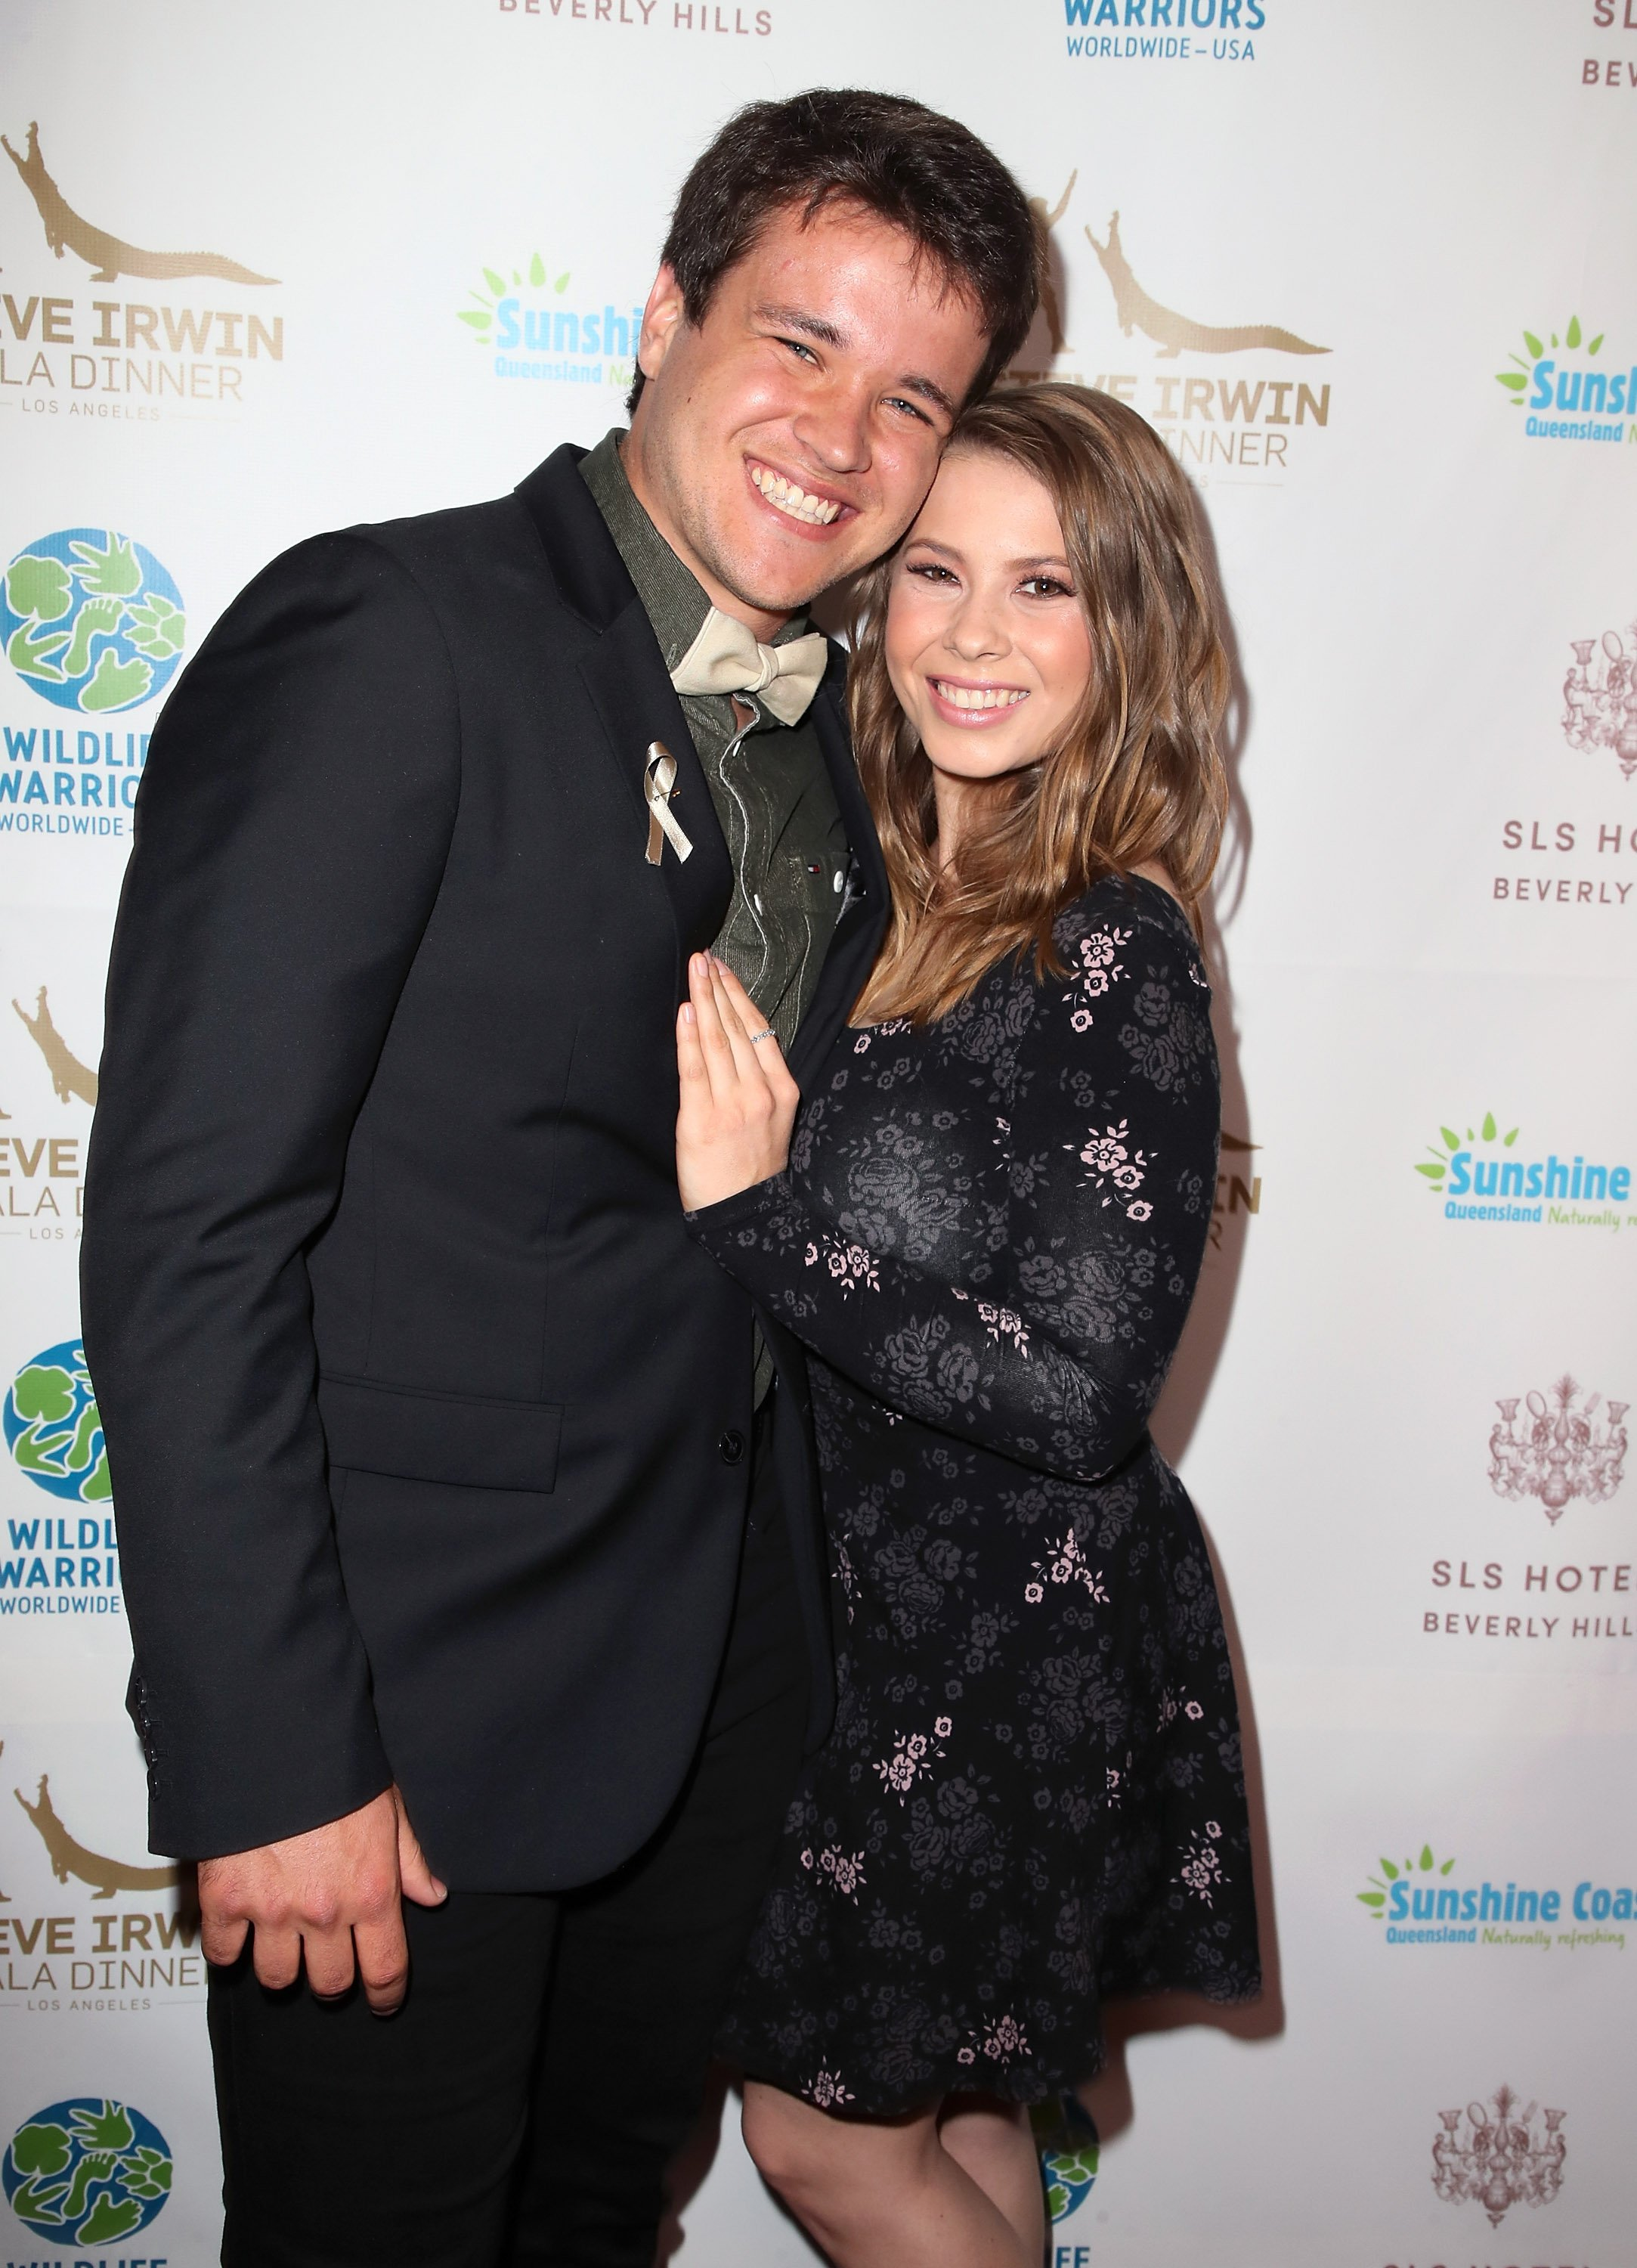 Chandler Powell  and Bindi Irwin attend the Steve Irwin Gala Dinner 2018 at SLS Hotel on May 5, 2018 | Photo: GettyImages